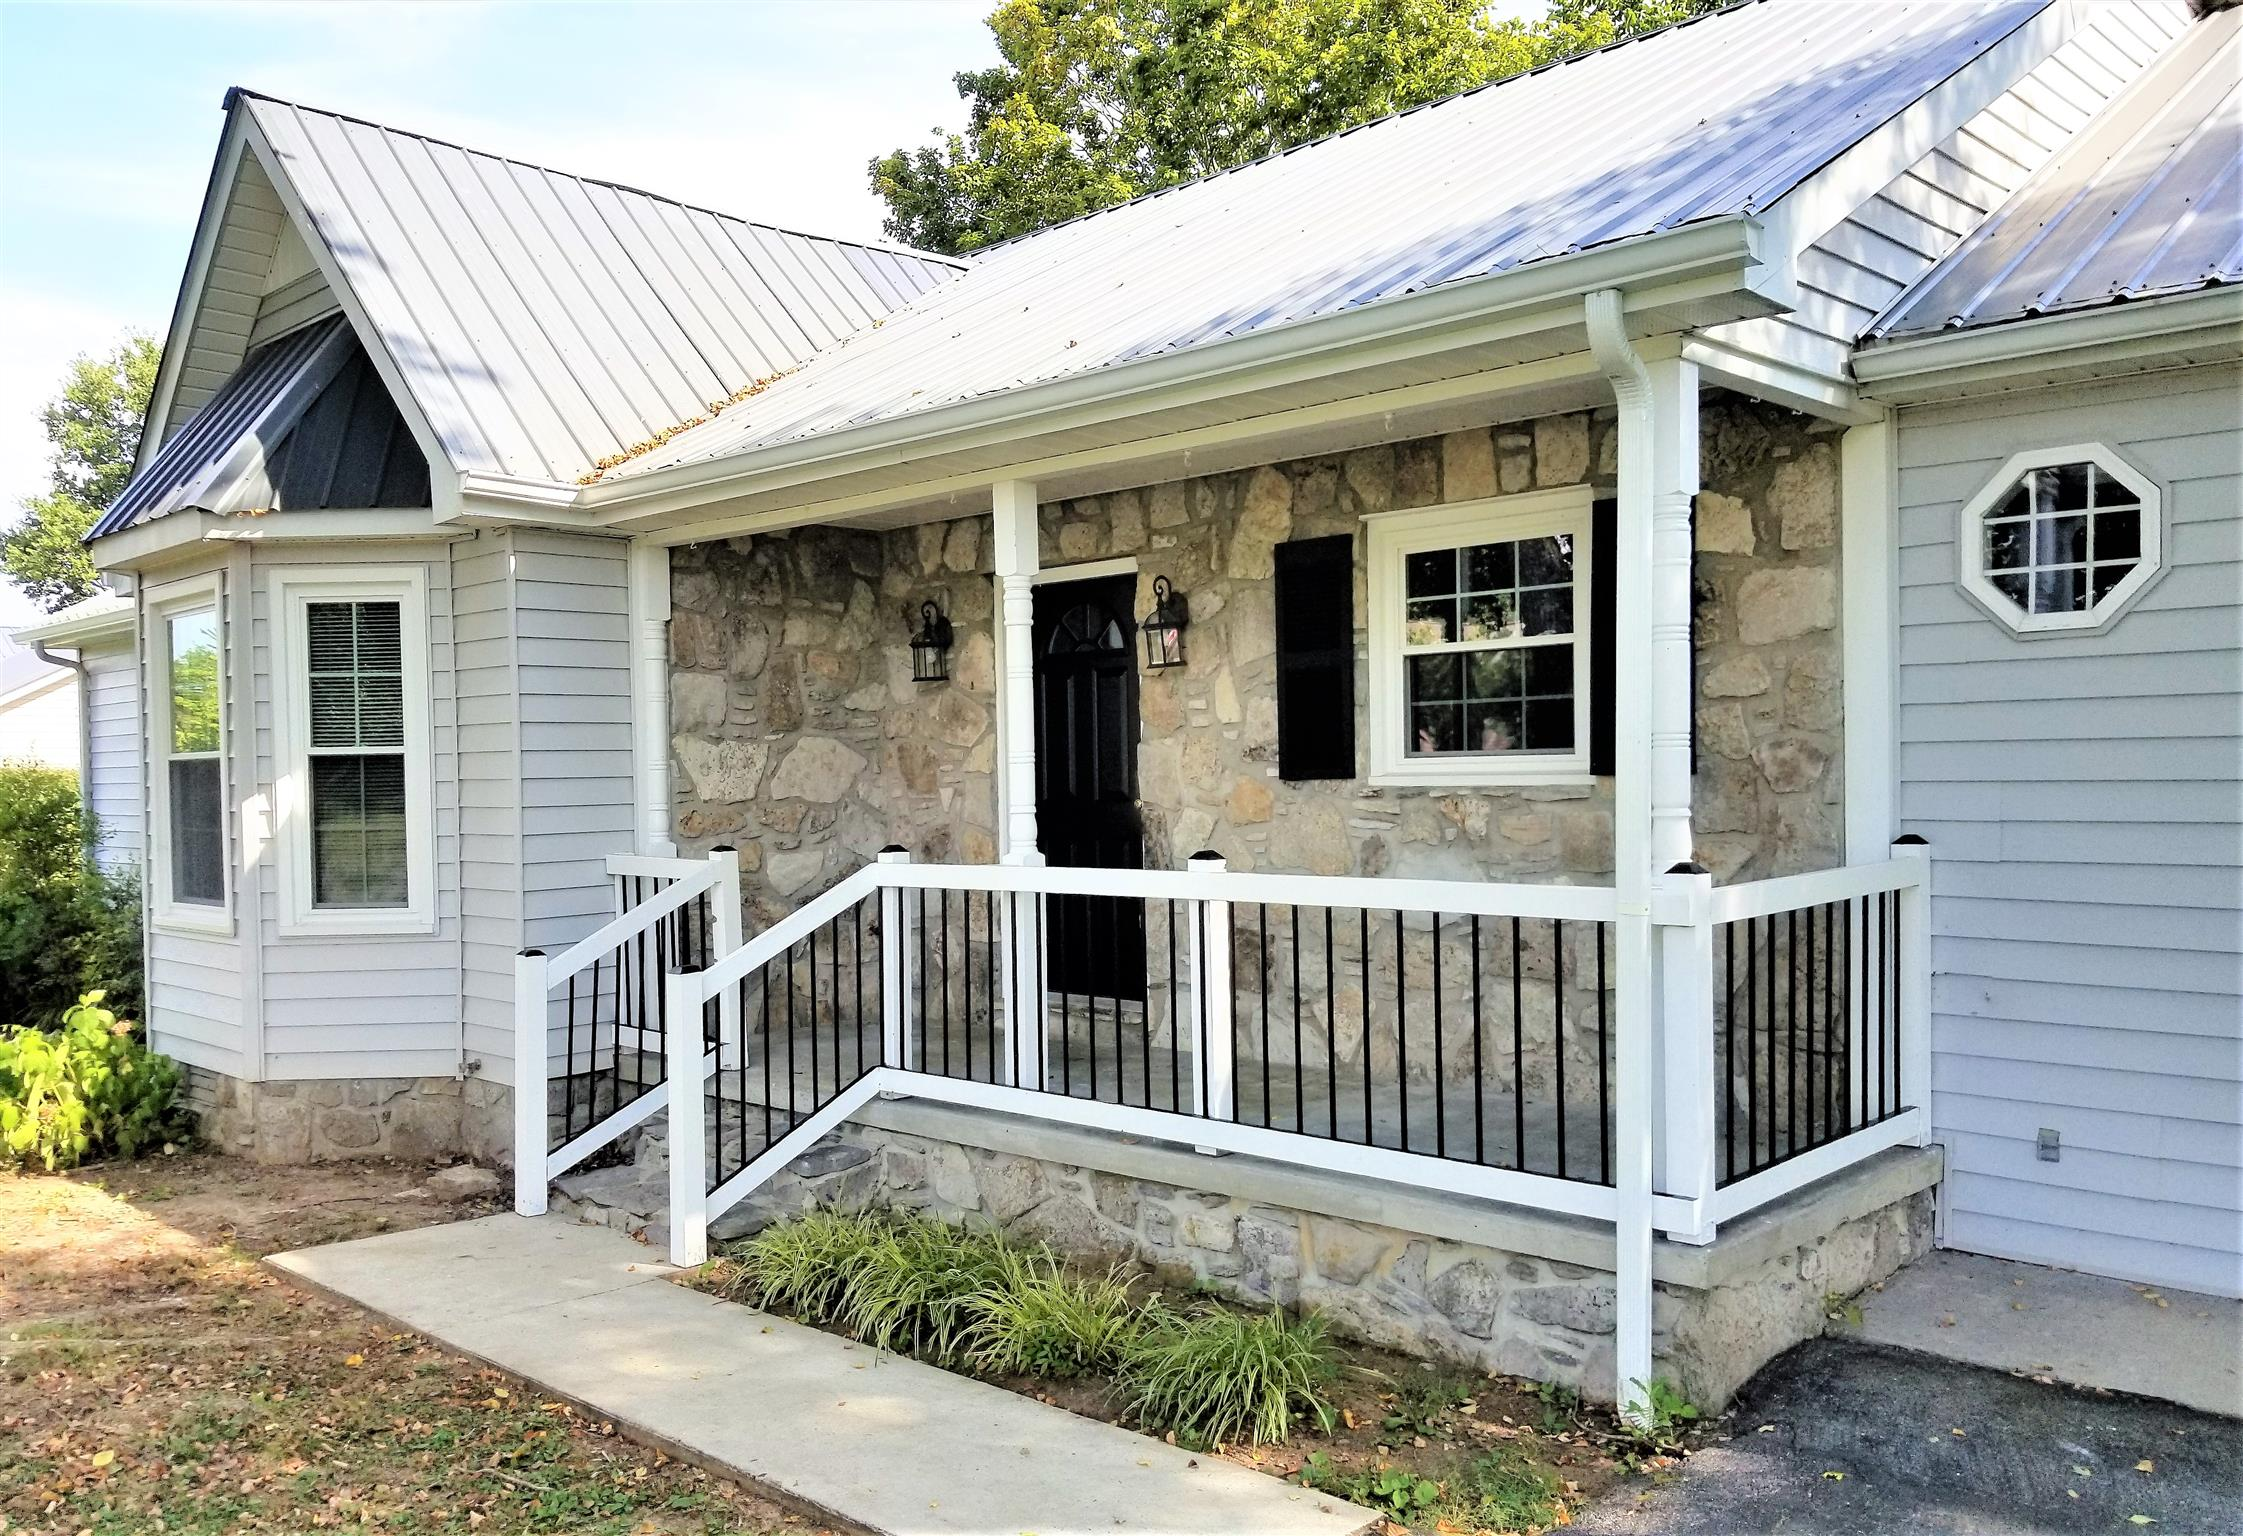 113 Beck Ln, McMinnville, TN 37110 - McMinnville, TN real estate listing